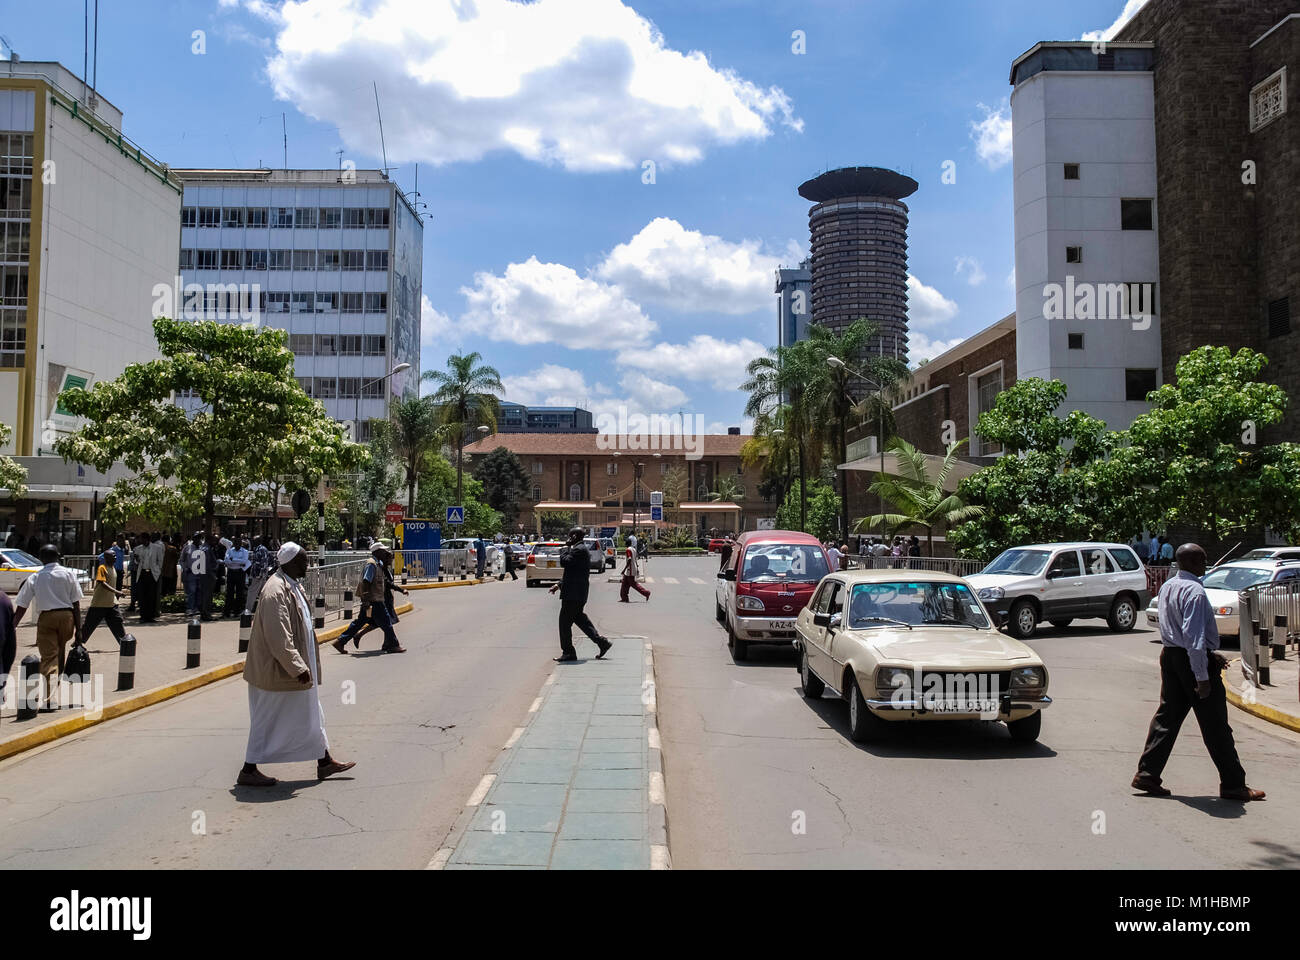 Nairobi Kenya November 3 2008 .Street scene in Nairobi.Cars and  people in street. In background there are buildings, - Stock Image